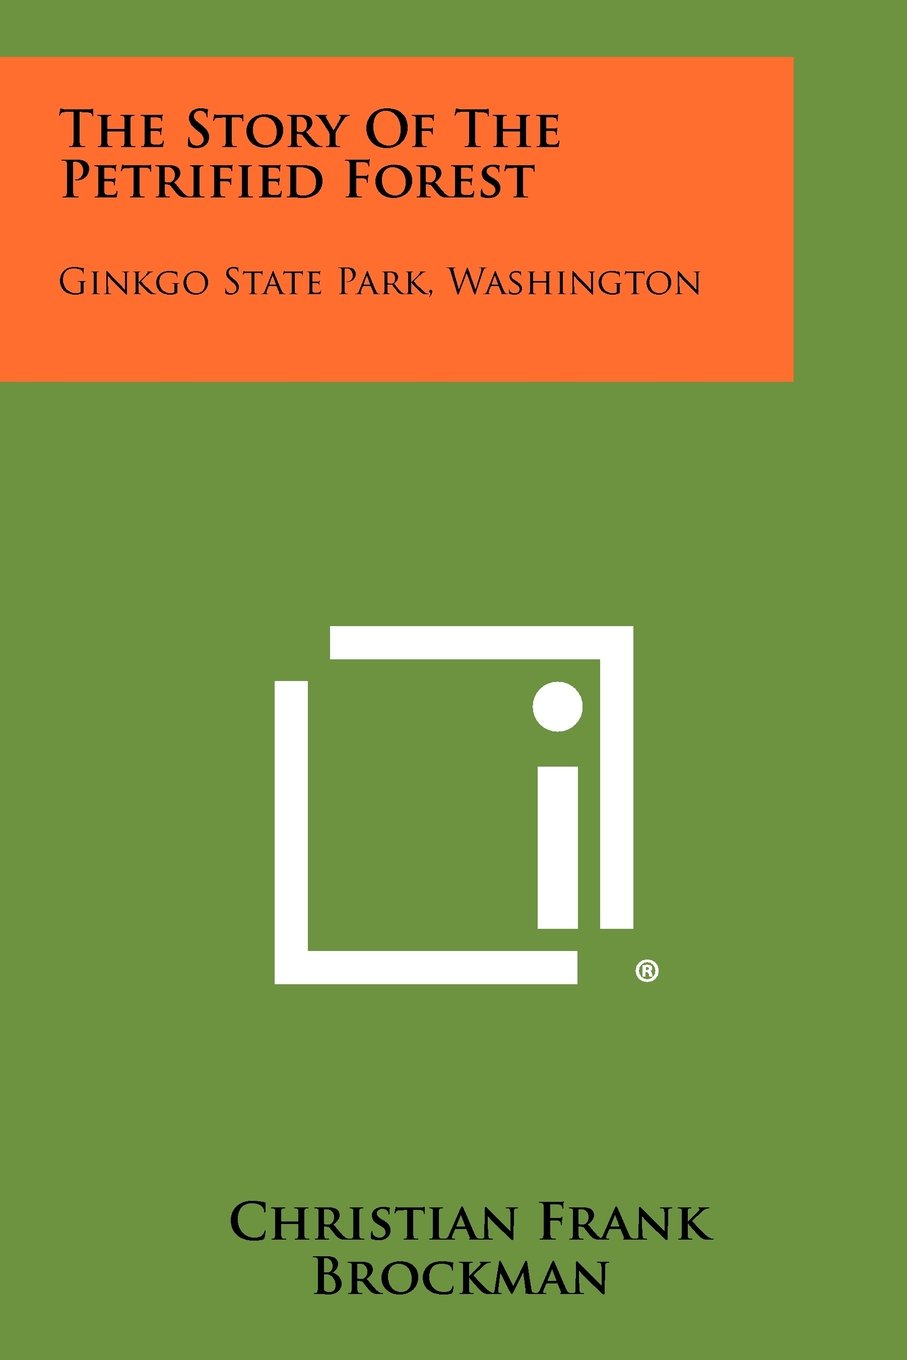 The Story of the Petrified Forest: Ginkgo State Park, Washington ebook